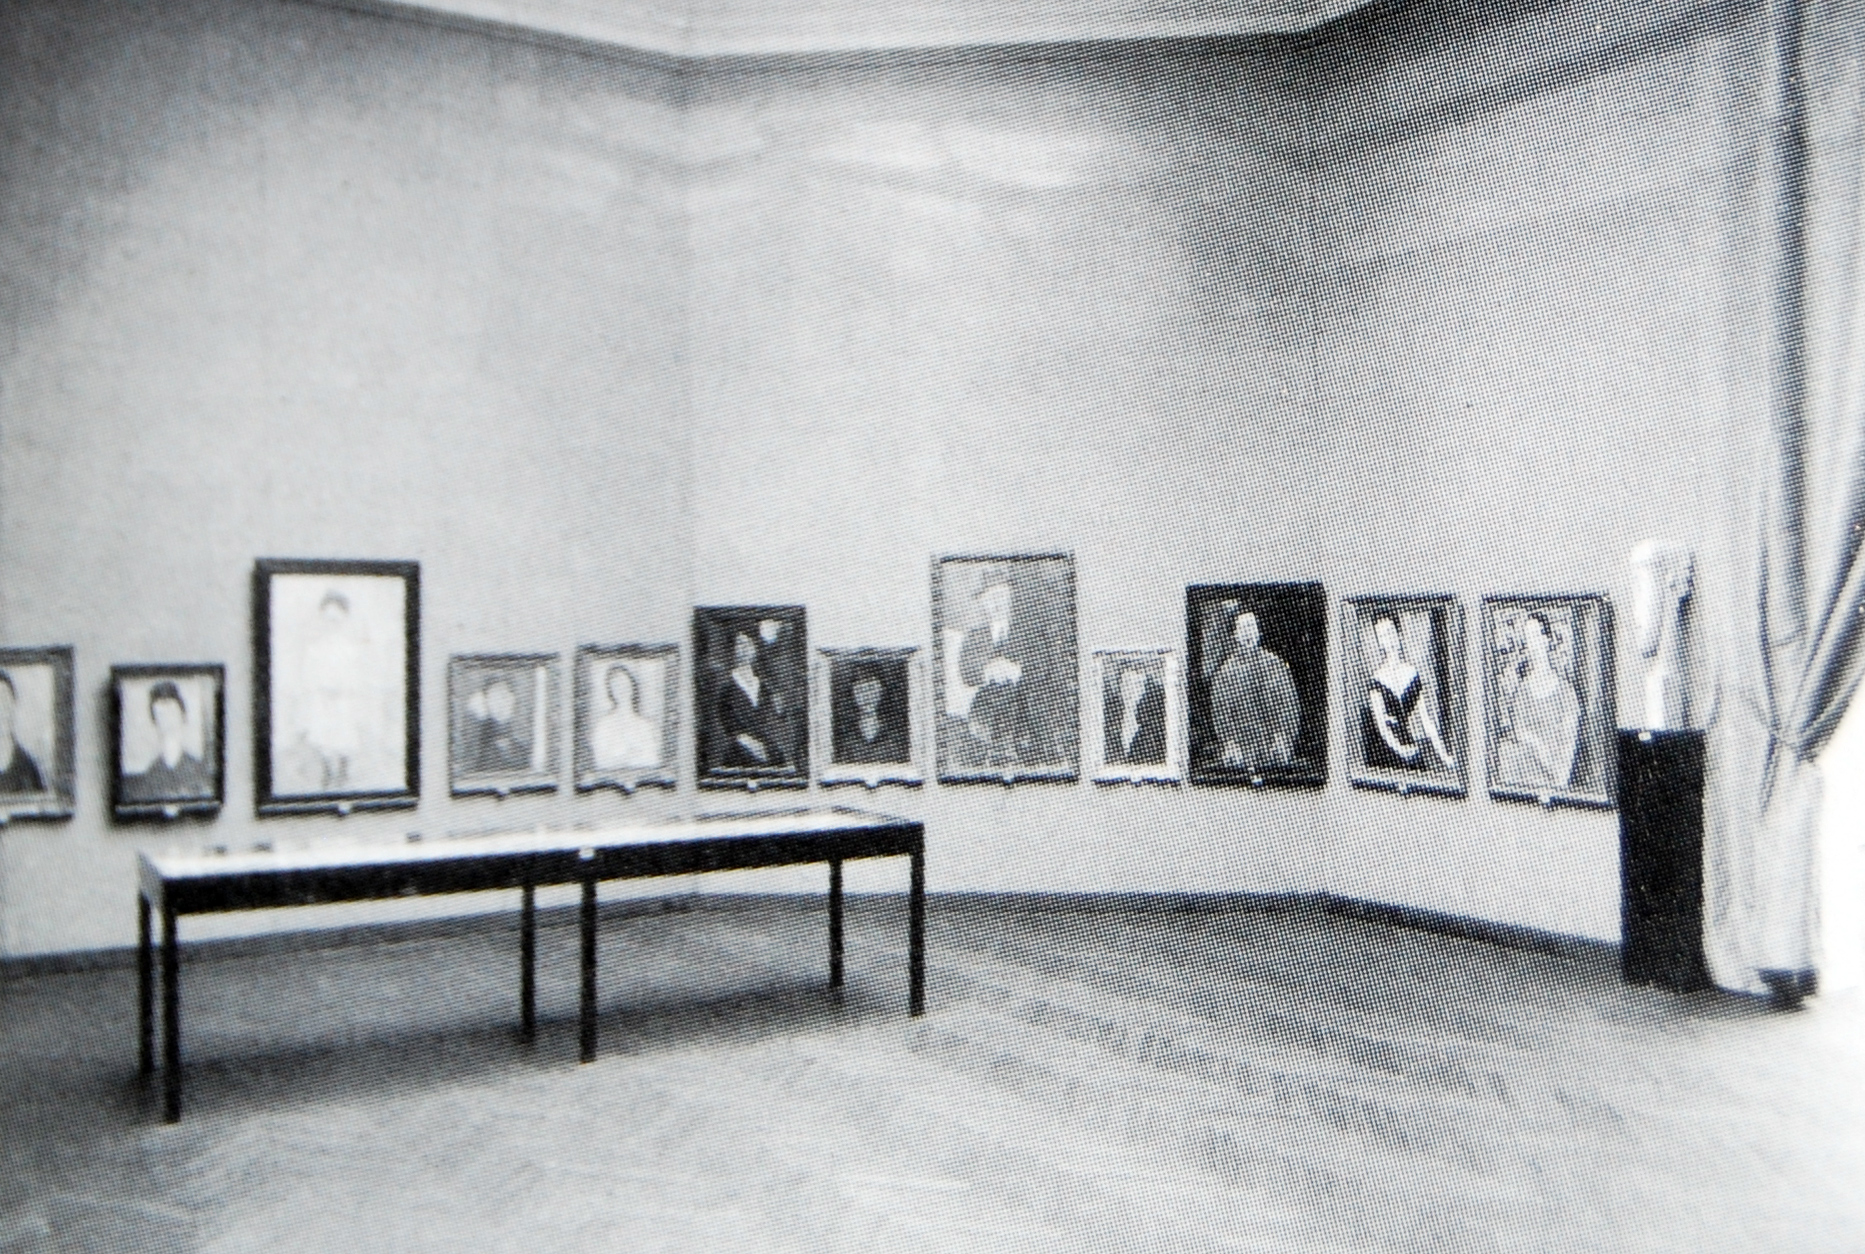 Hall of the Venice Biennale in 1930 dedicated to Amedeo Modigliani.